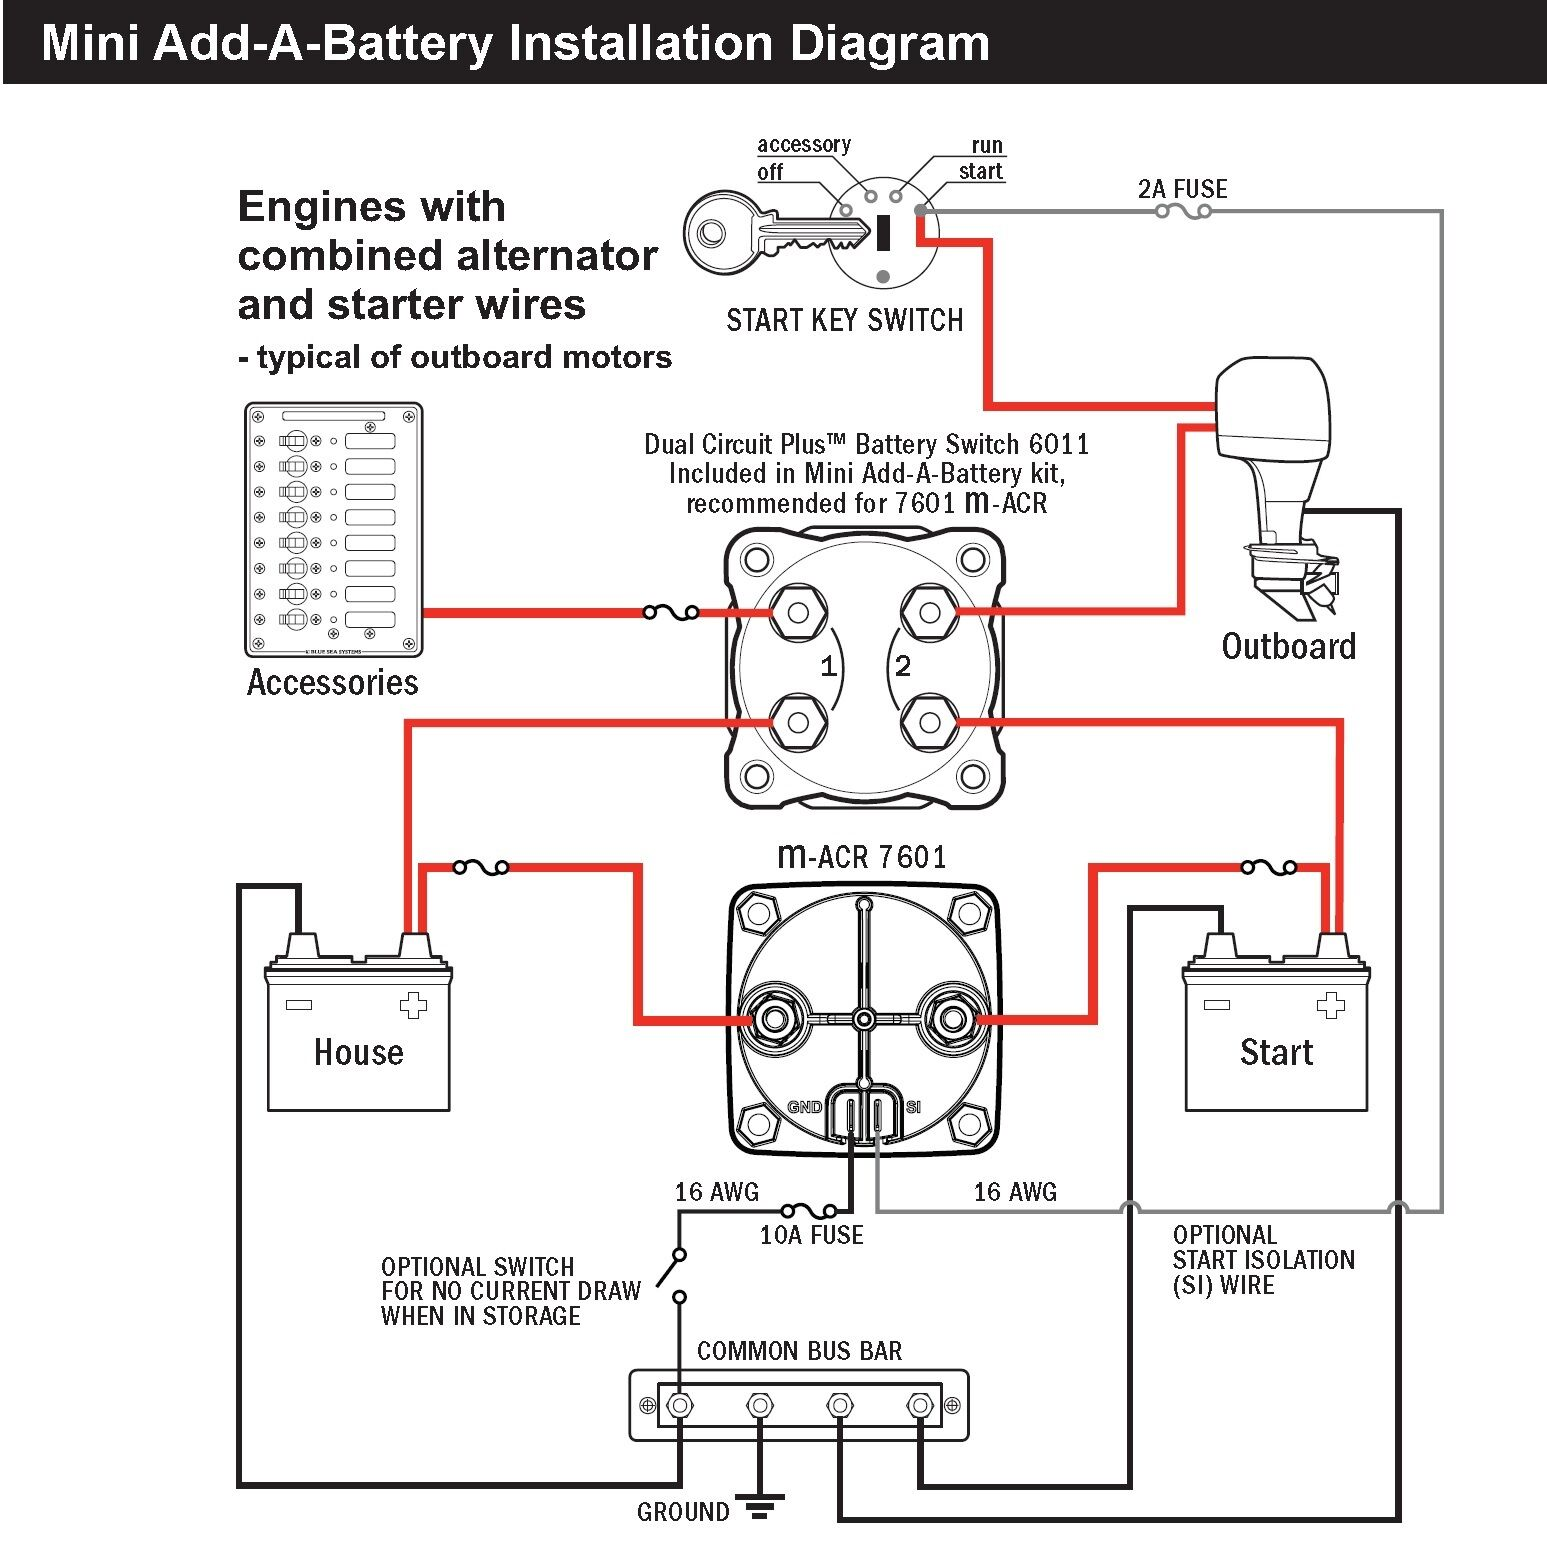 $(KGrHqJHJEkFE2s+(4!BRe pREItg~~60_57 powered subwoofer wiring diagram efcaviation com home subwoofer wiring diagrams at panicattacktreatment.co